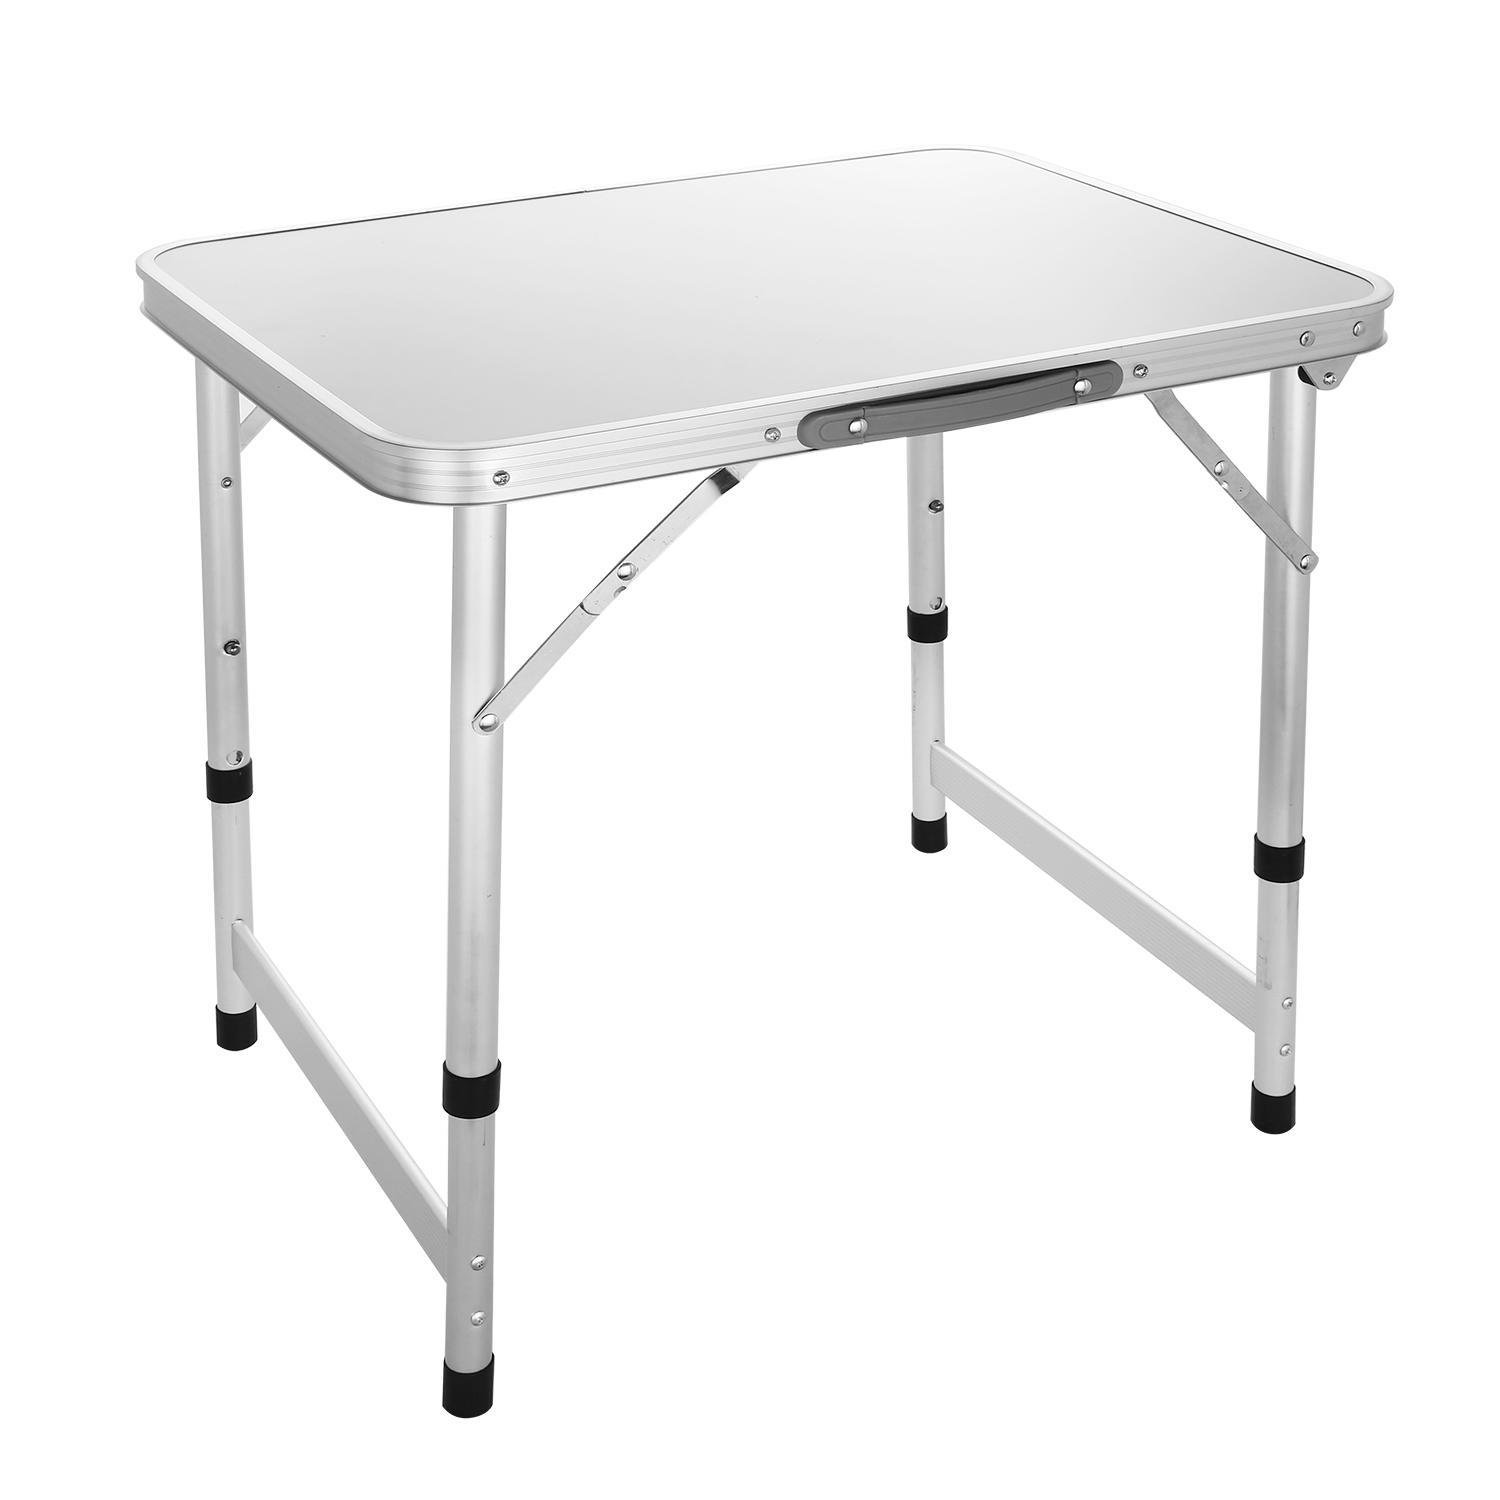 Portable Adjustable Folding Table Outdoor Picnic Camping Table